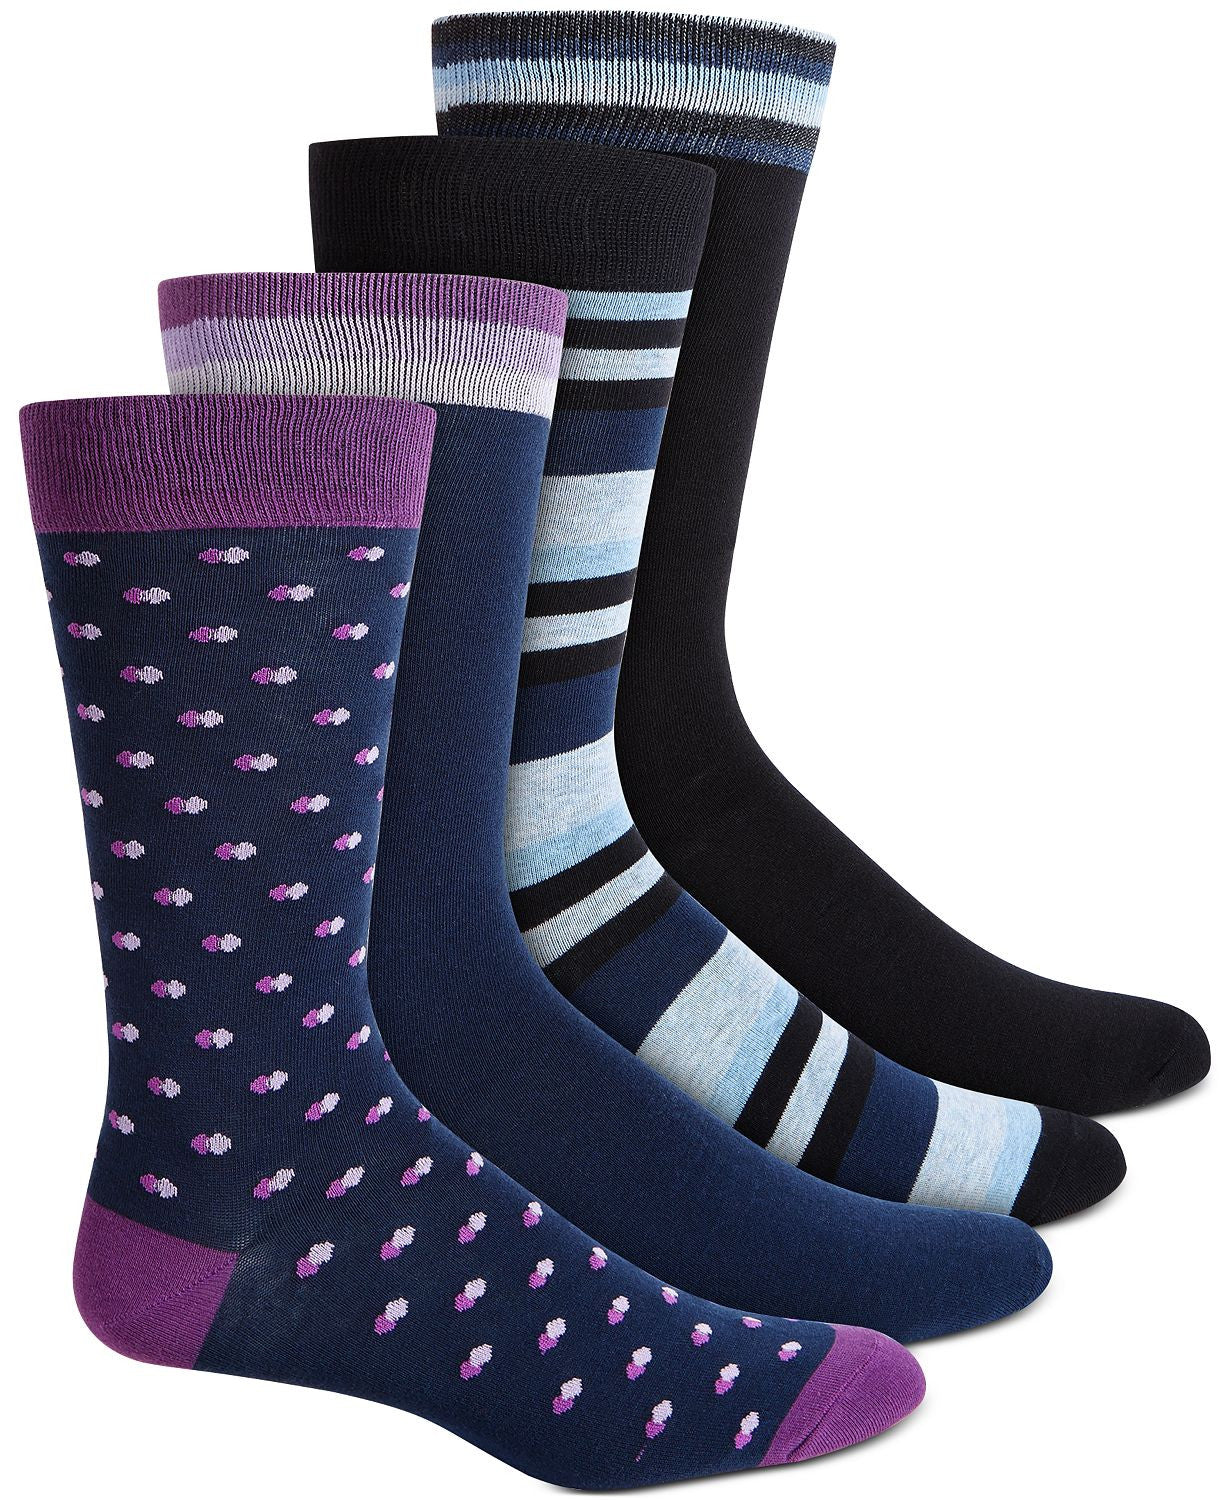 BAR III 4 Pack Socks Navy Purple